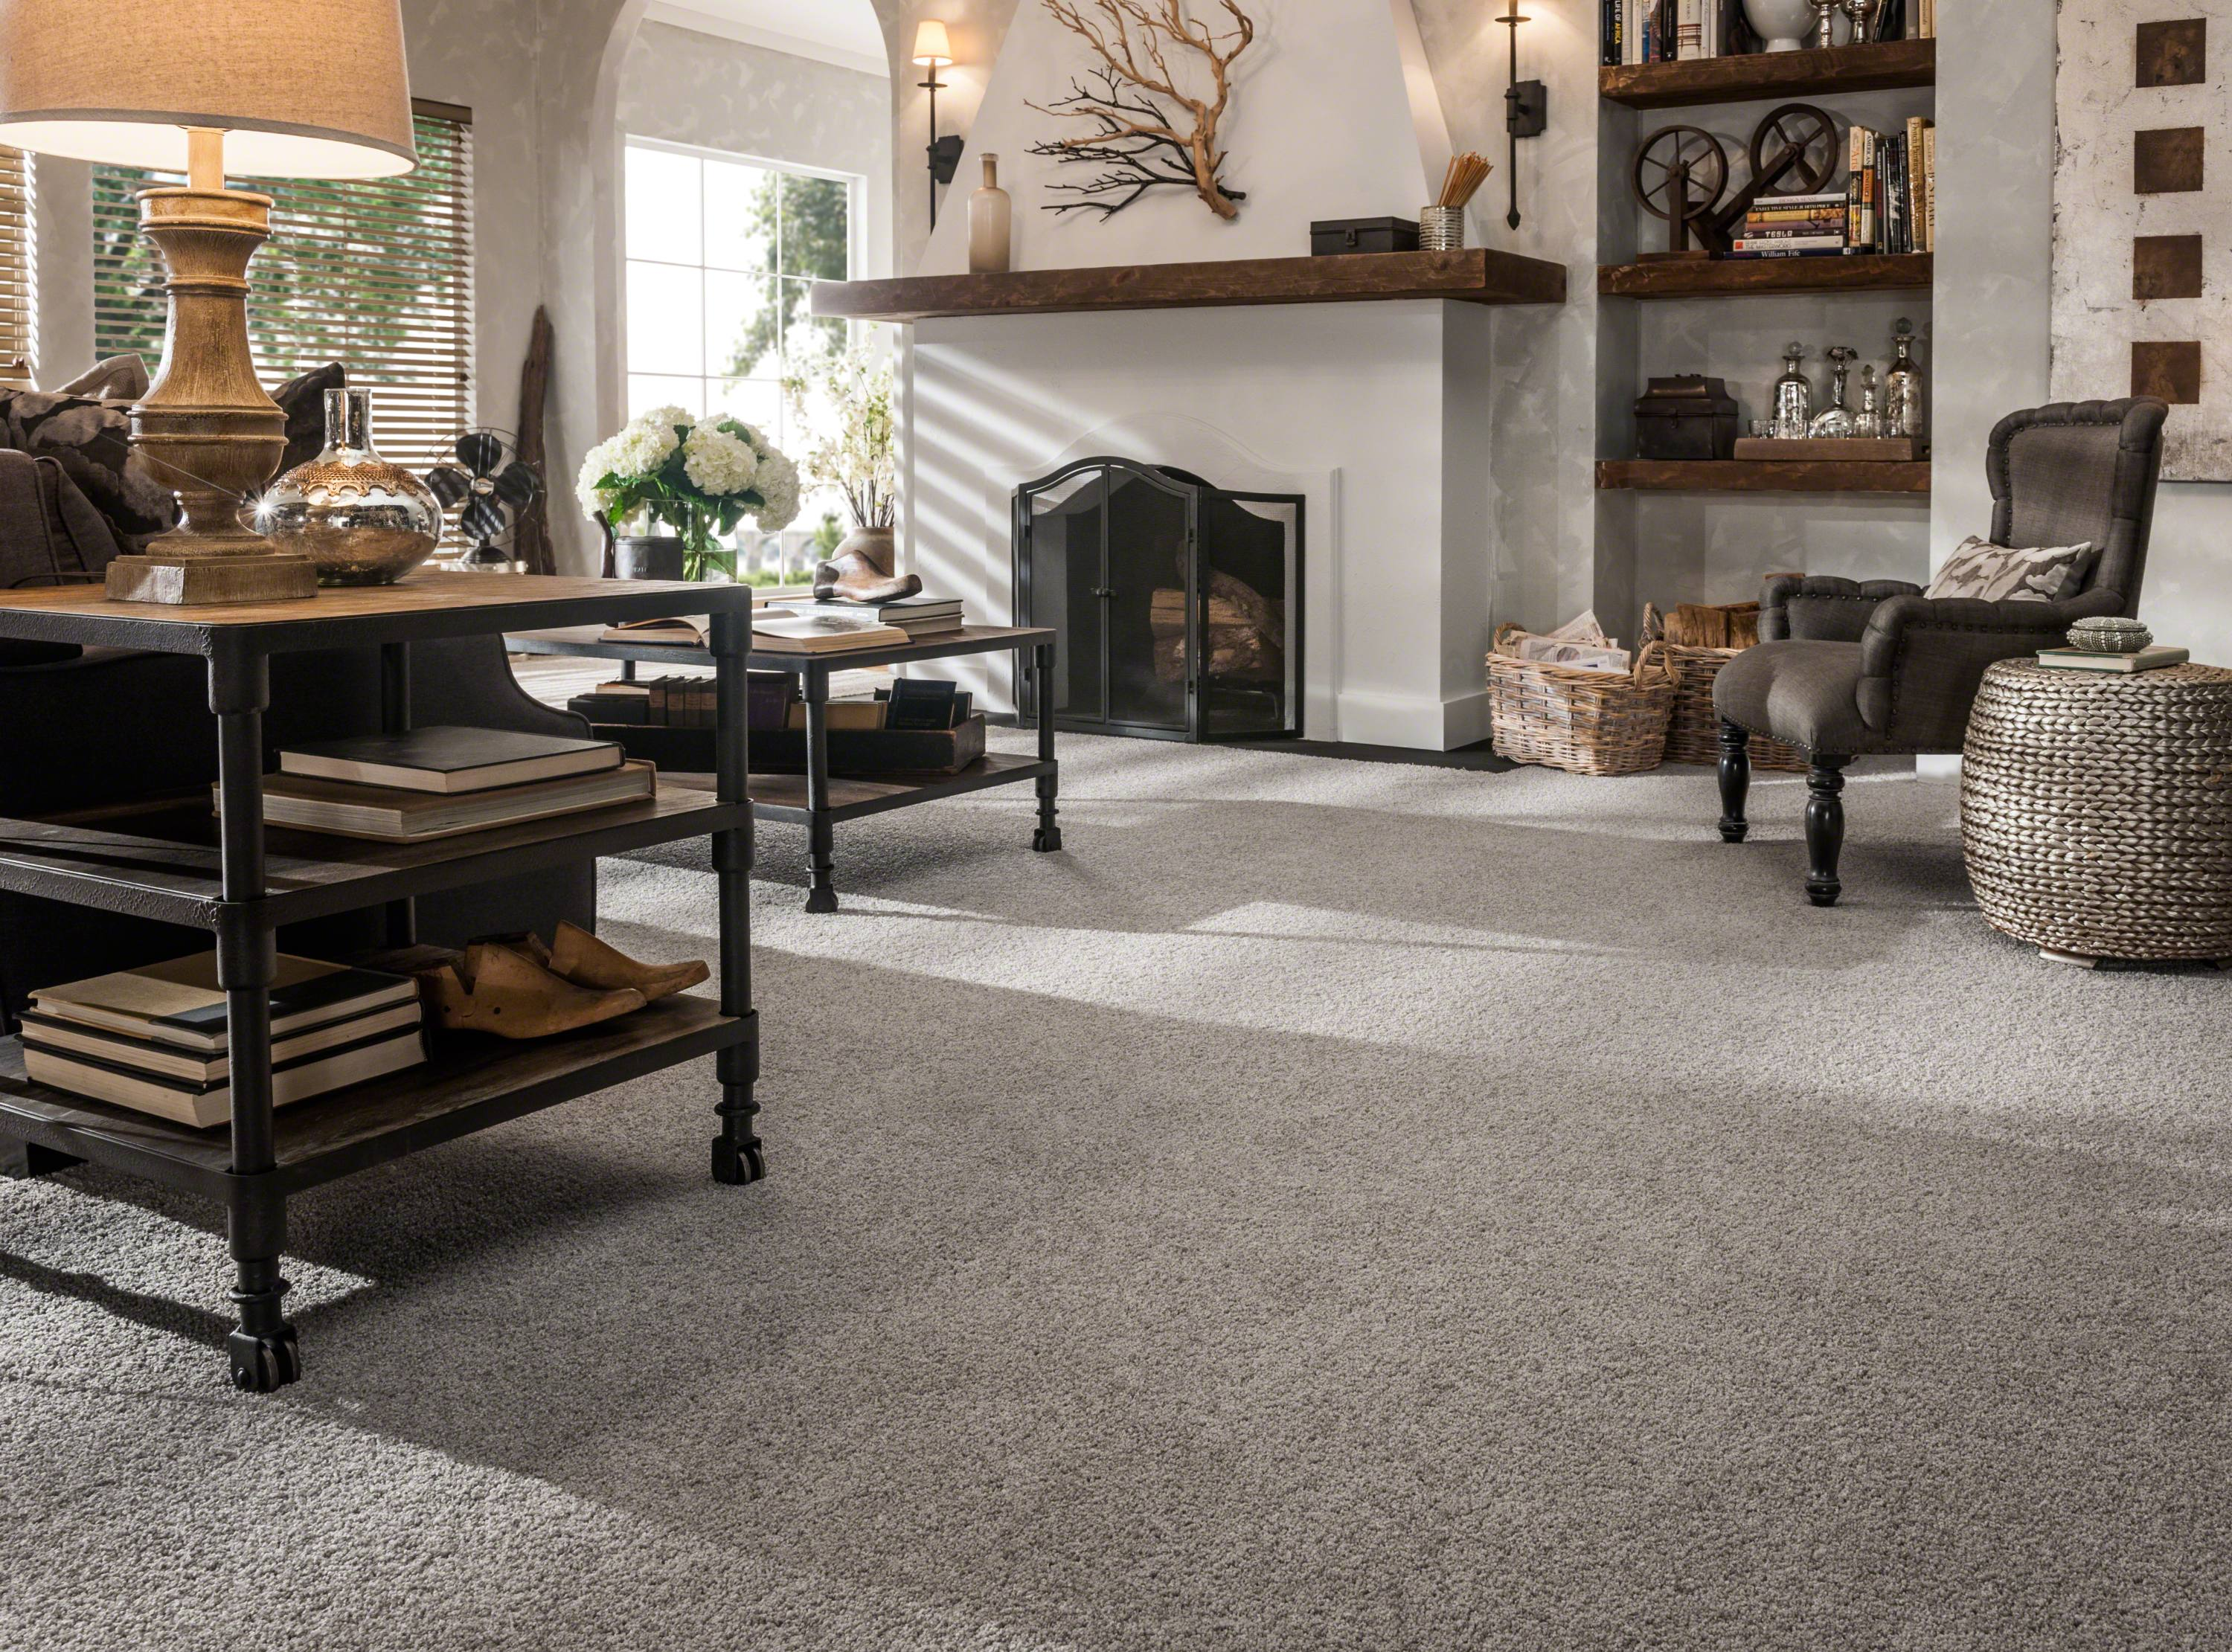 big rug brown ceramic t carpets grey shiny leather rooms flooring large cushion light size with carpet minimalist sofa dark white fur living show don l medium room for furnished colors ideas tile modern design livings that area rugs ivory wood very